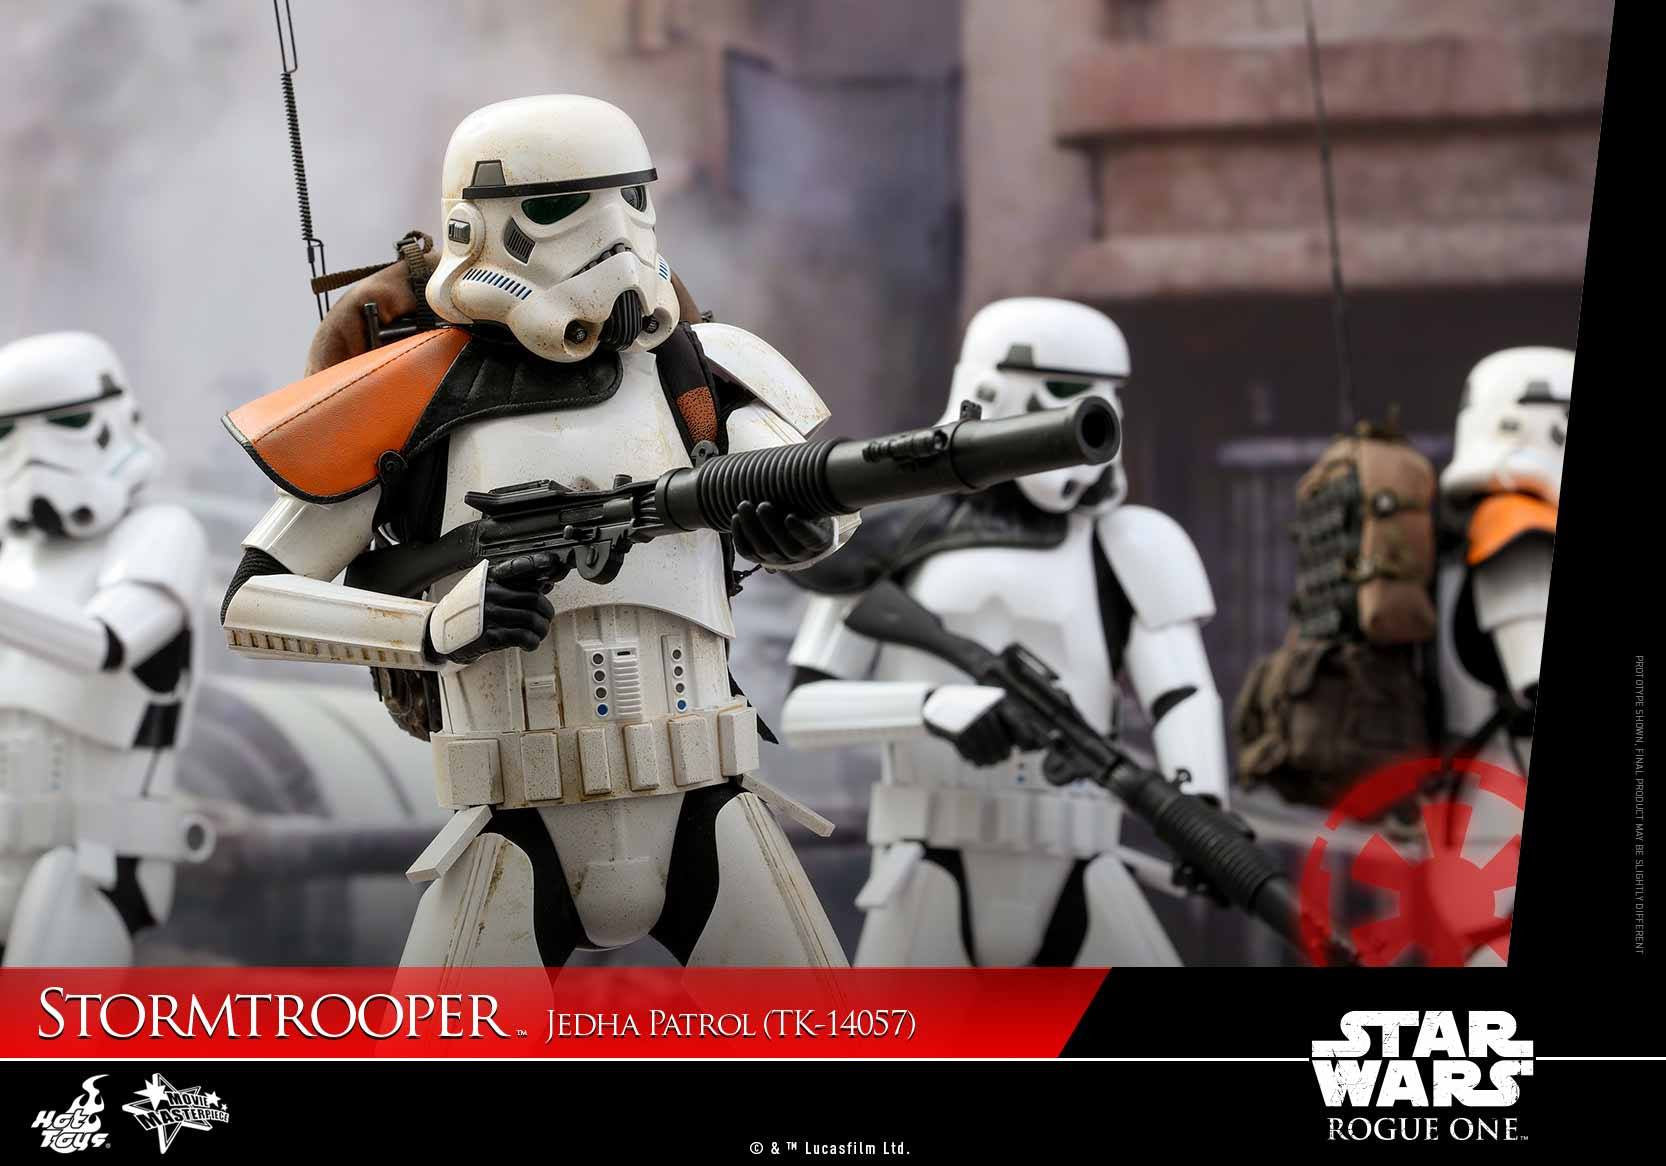 Hot Toys - MMS392 - Rogue One: A Star Wars Story - Stormtrooper Jedha Patrol (TK-14057) - Marvelous Toys - 5